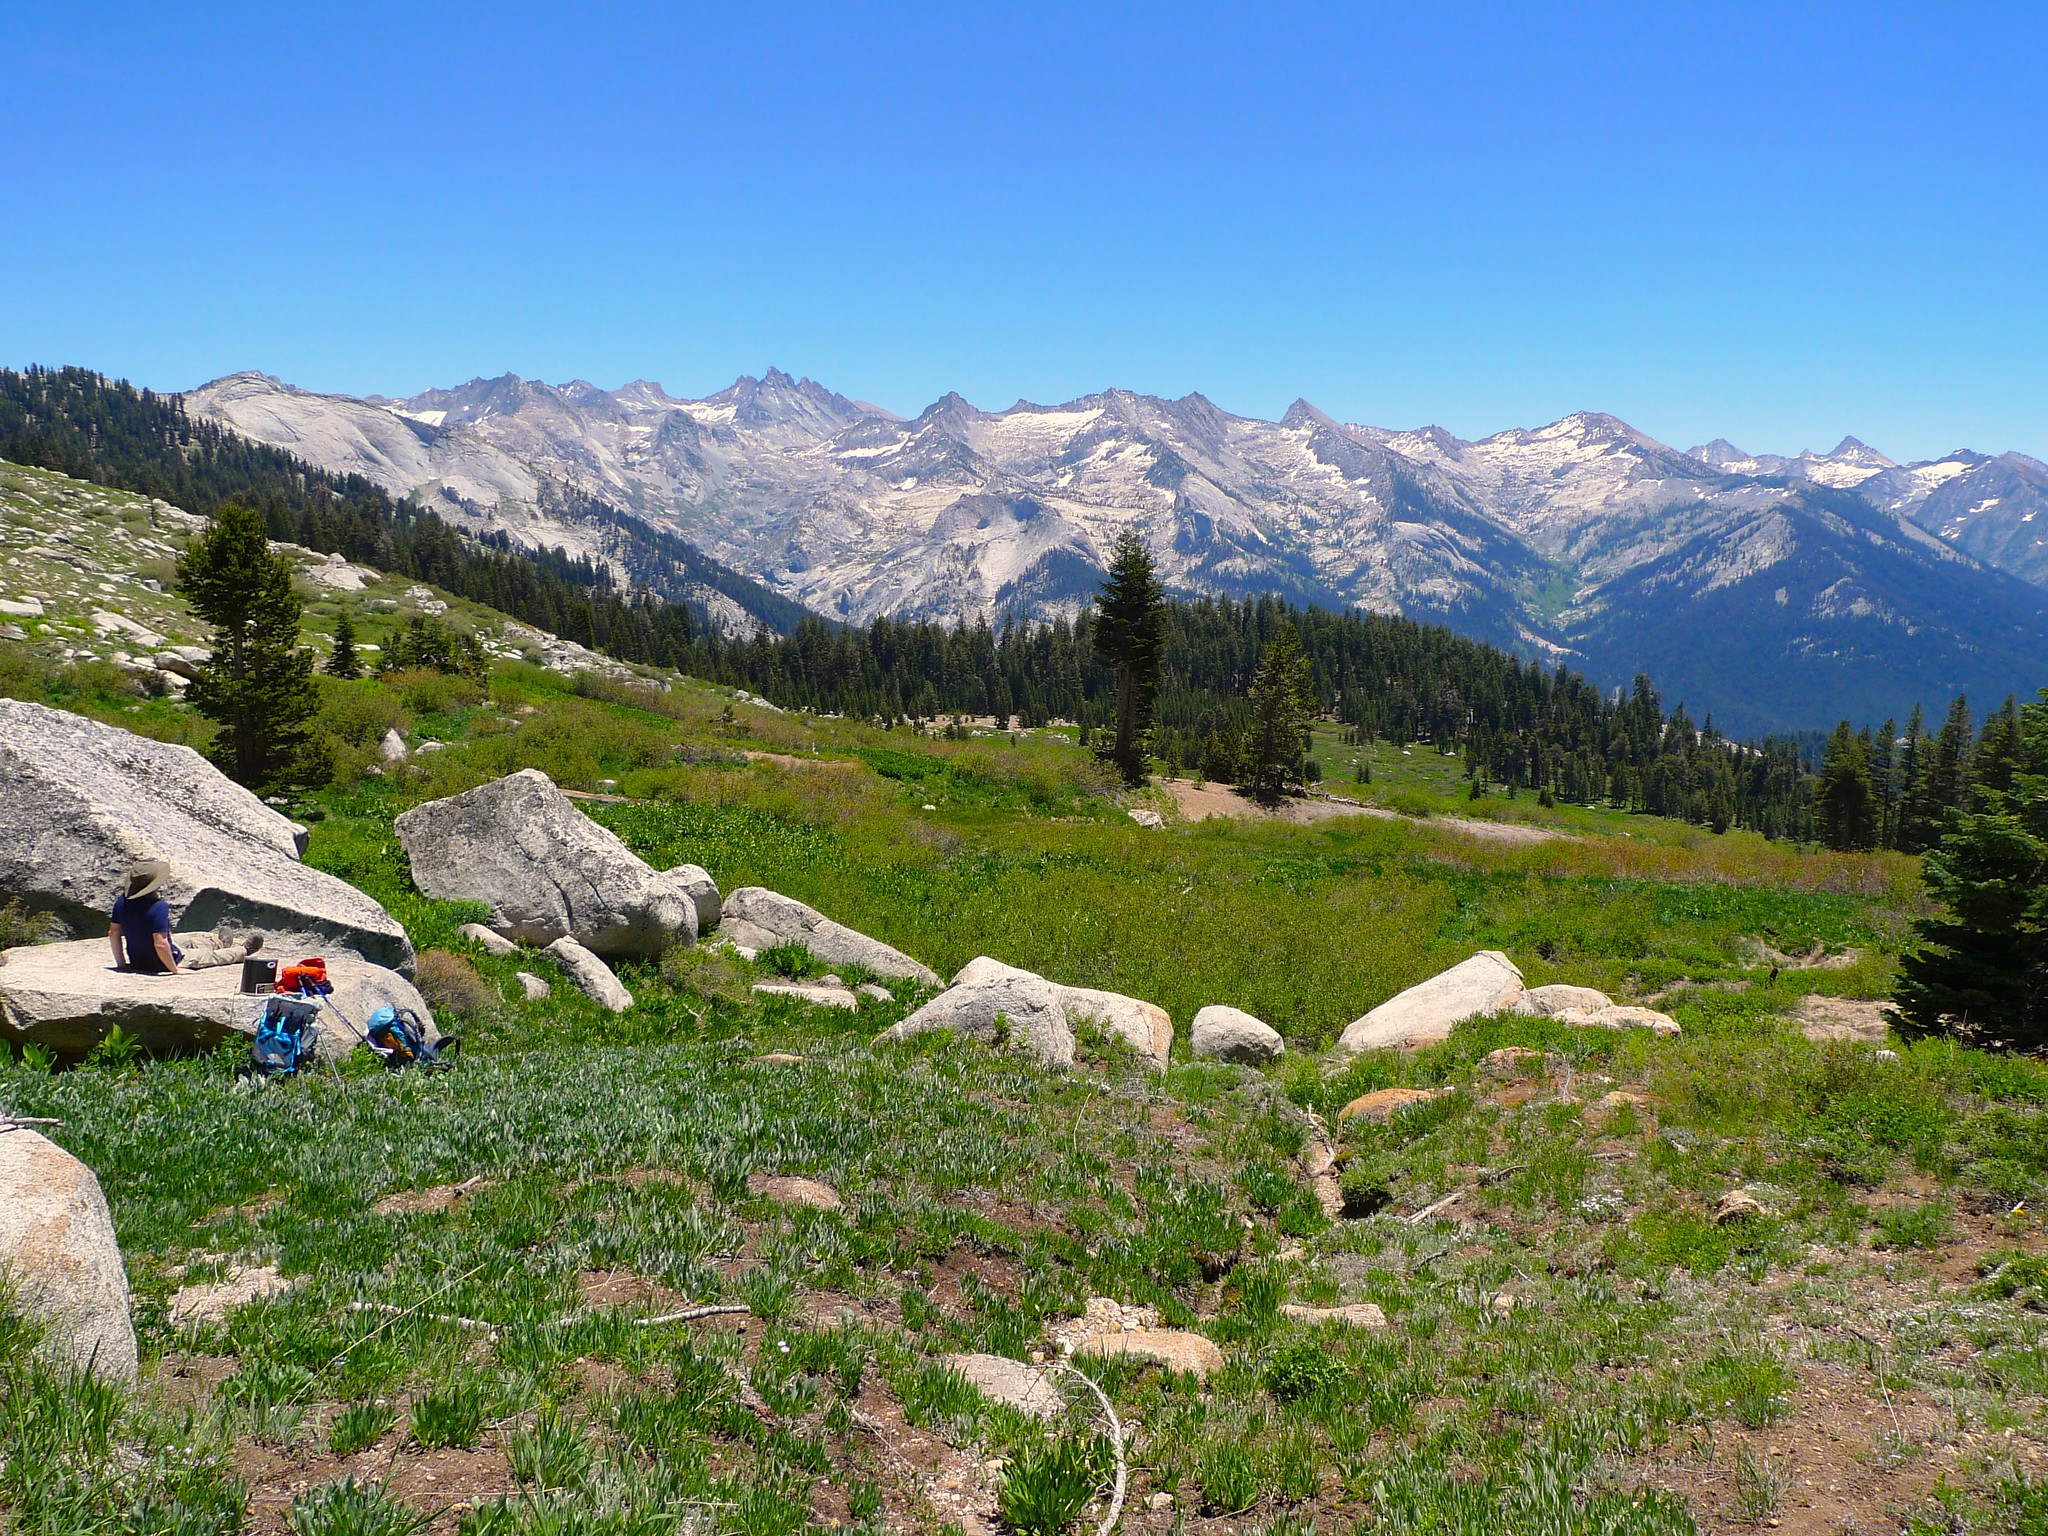 Lunch break at Alta Meadow